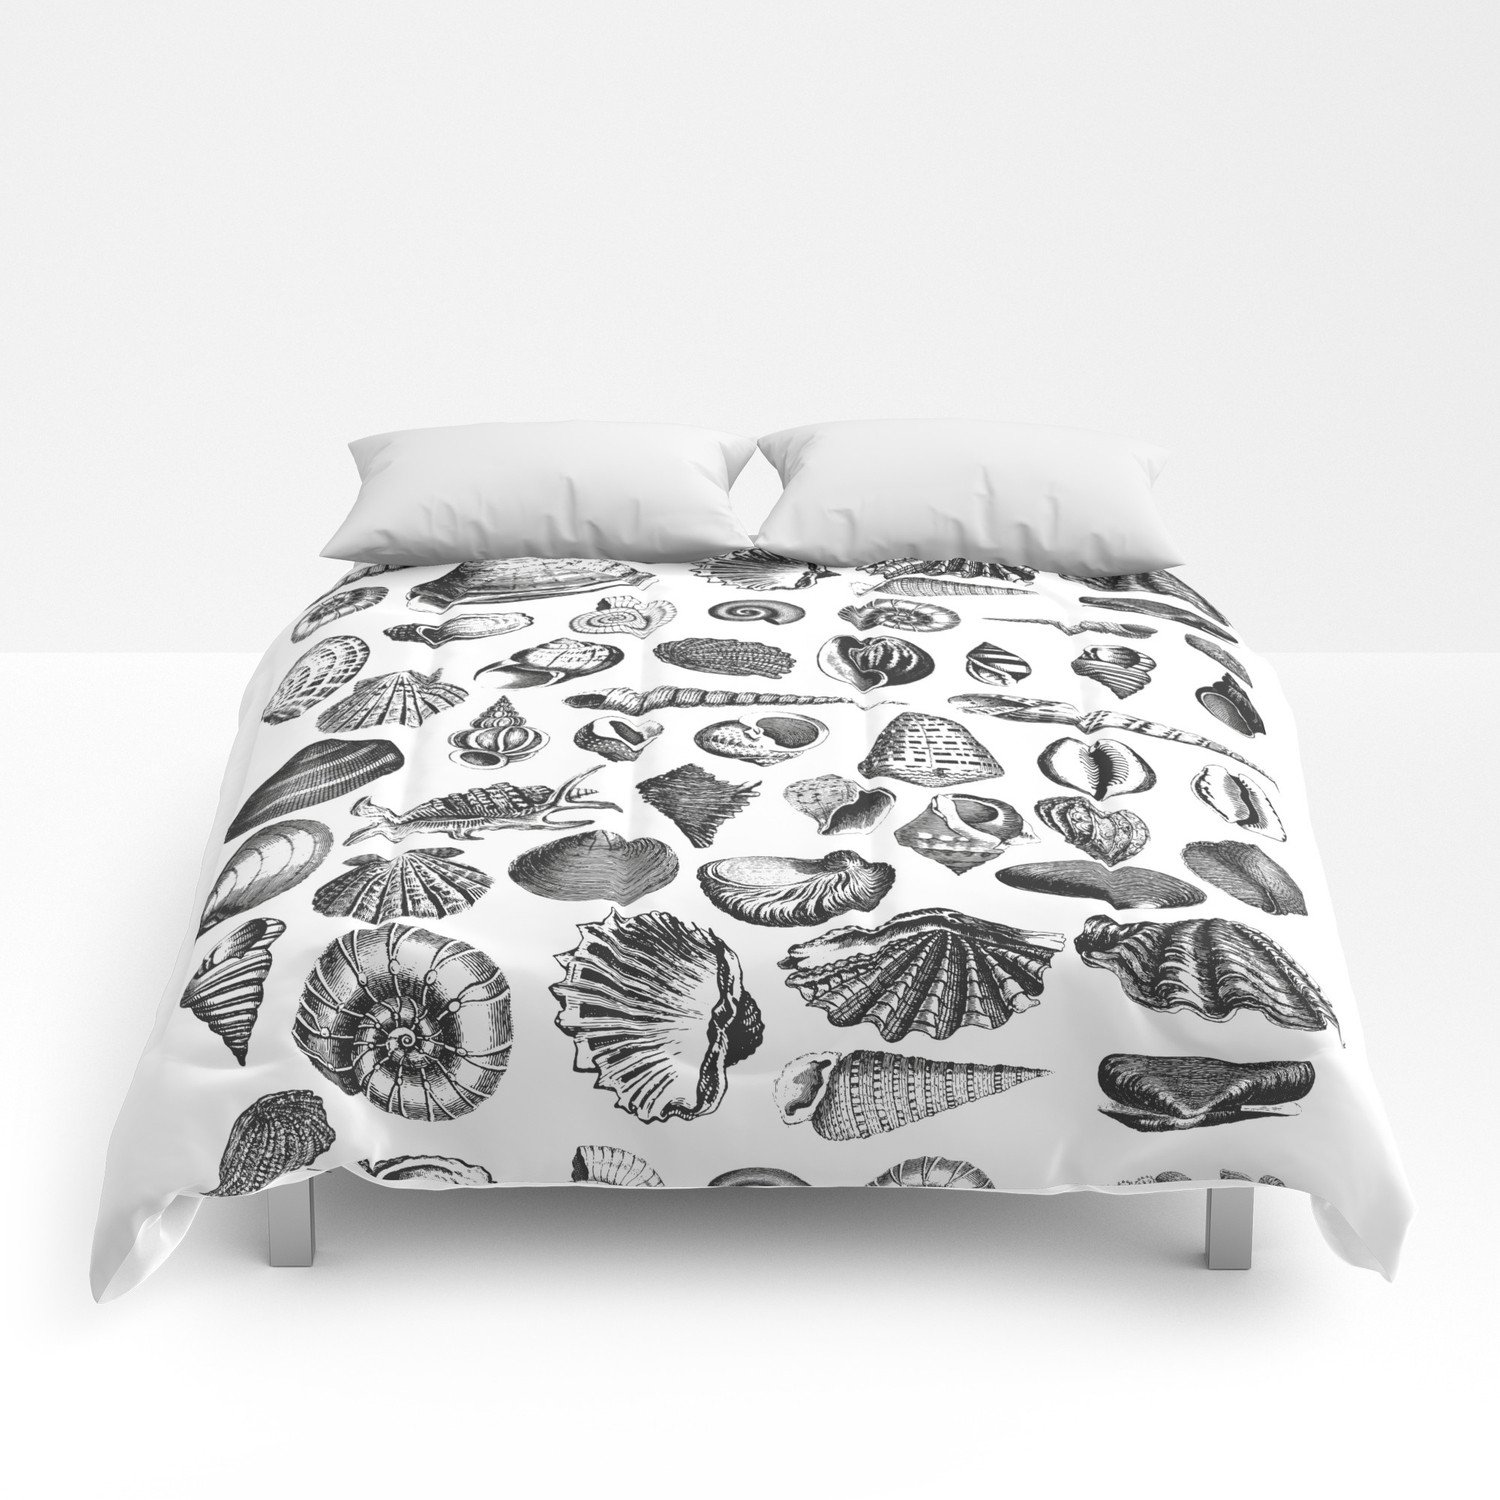 Bedroom In A Bag with Curtains Inspirational Vintage Sea Shell Drawing Black and White forters